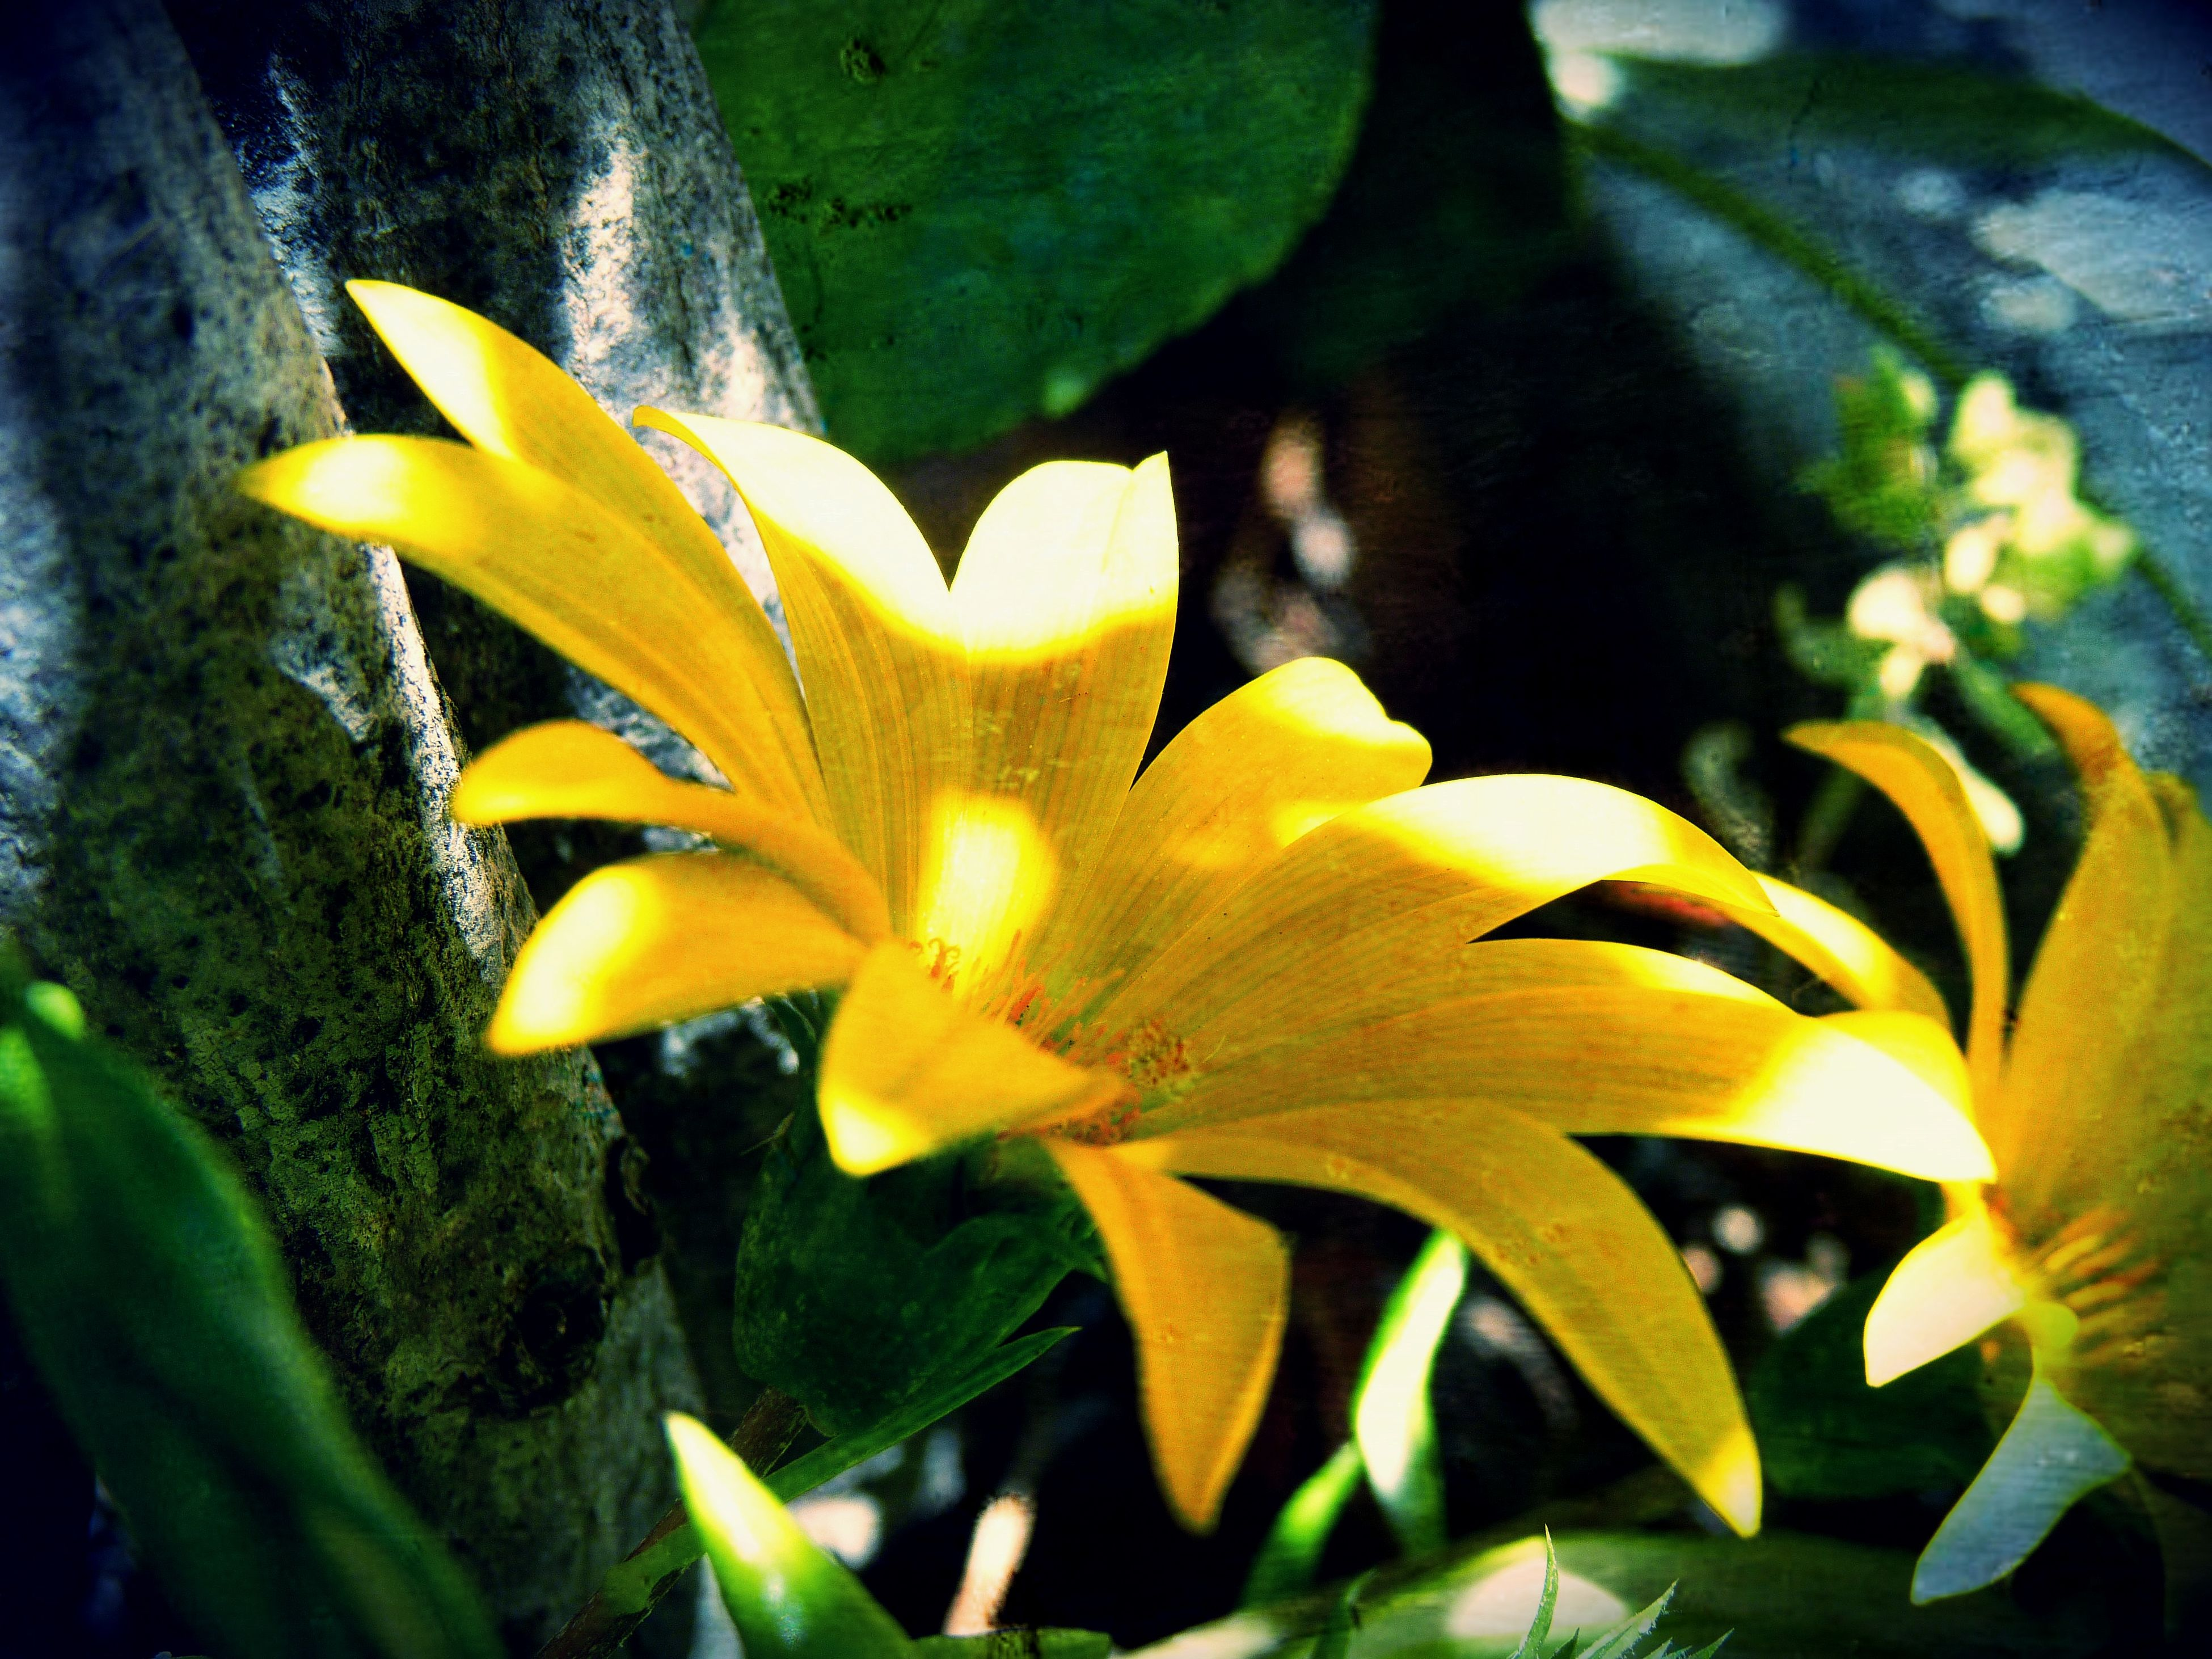 flower, fragility, nature, beauty in nature, yellow, freshness, close-up, growth, petal, flower head, no people, plant, day, outdoors, blooming, day lily